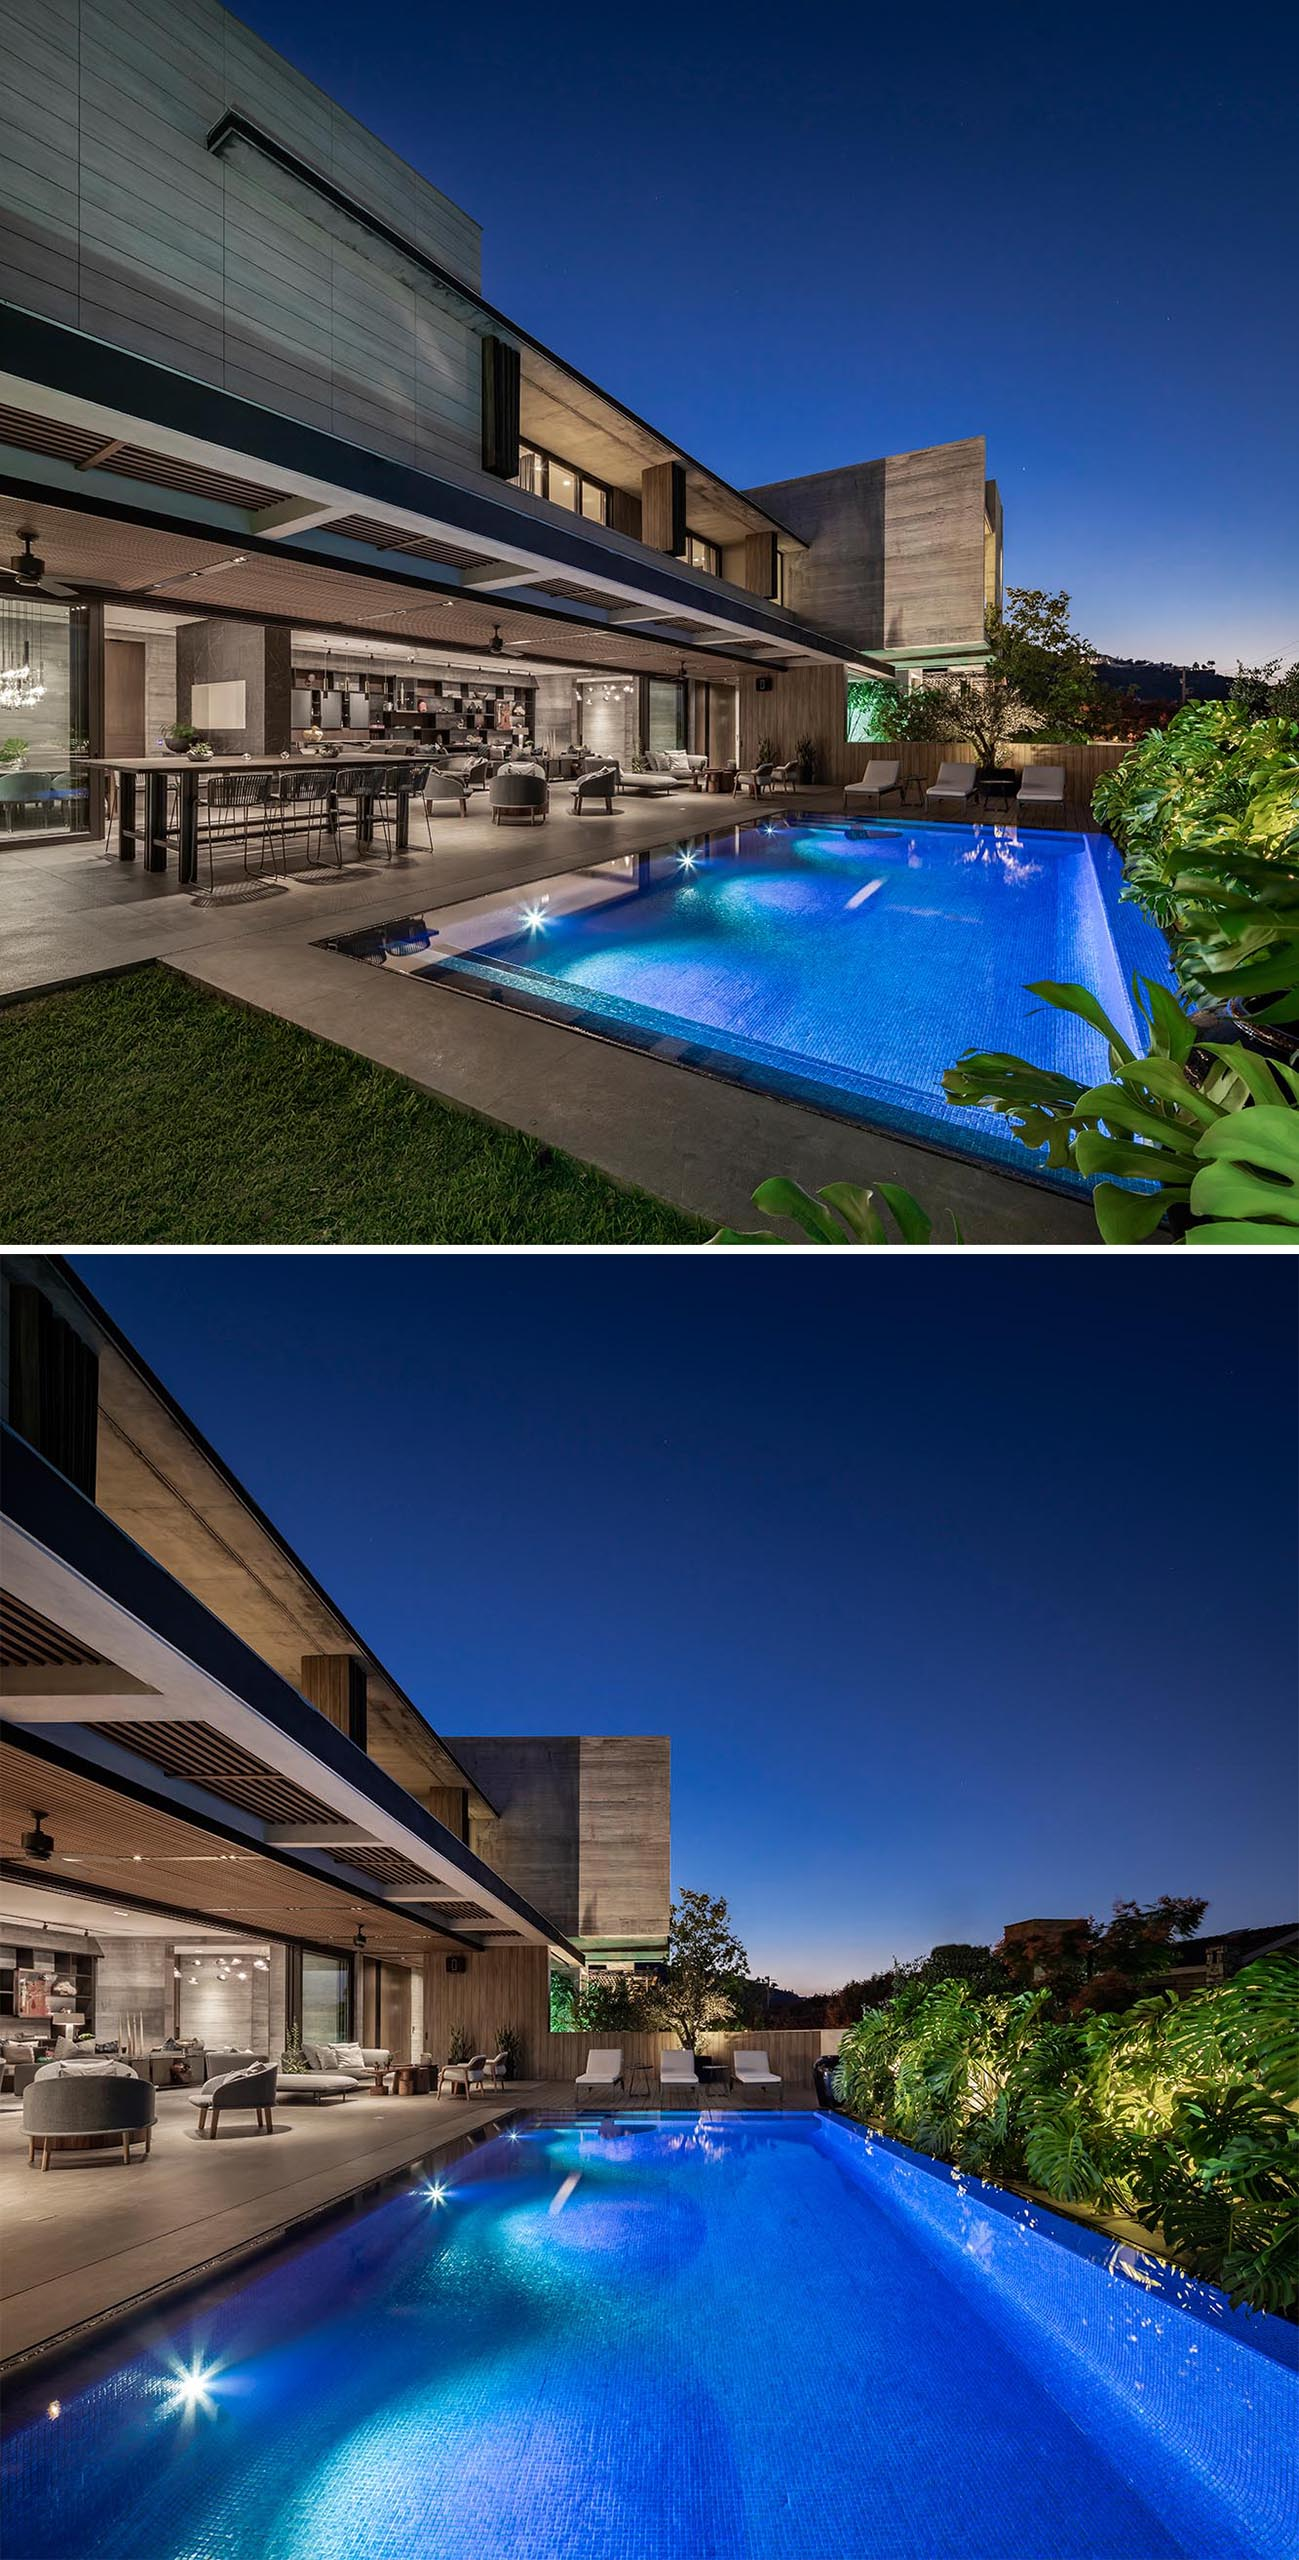 A modern concrete house with a swimming pool and expansive outdoor entertaining areas.